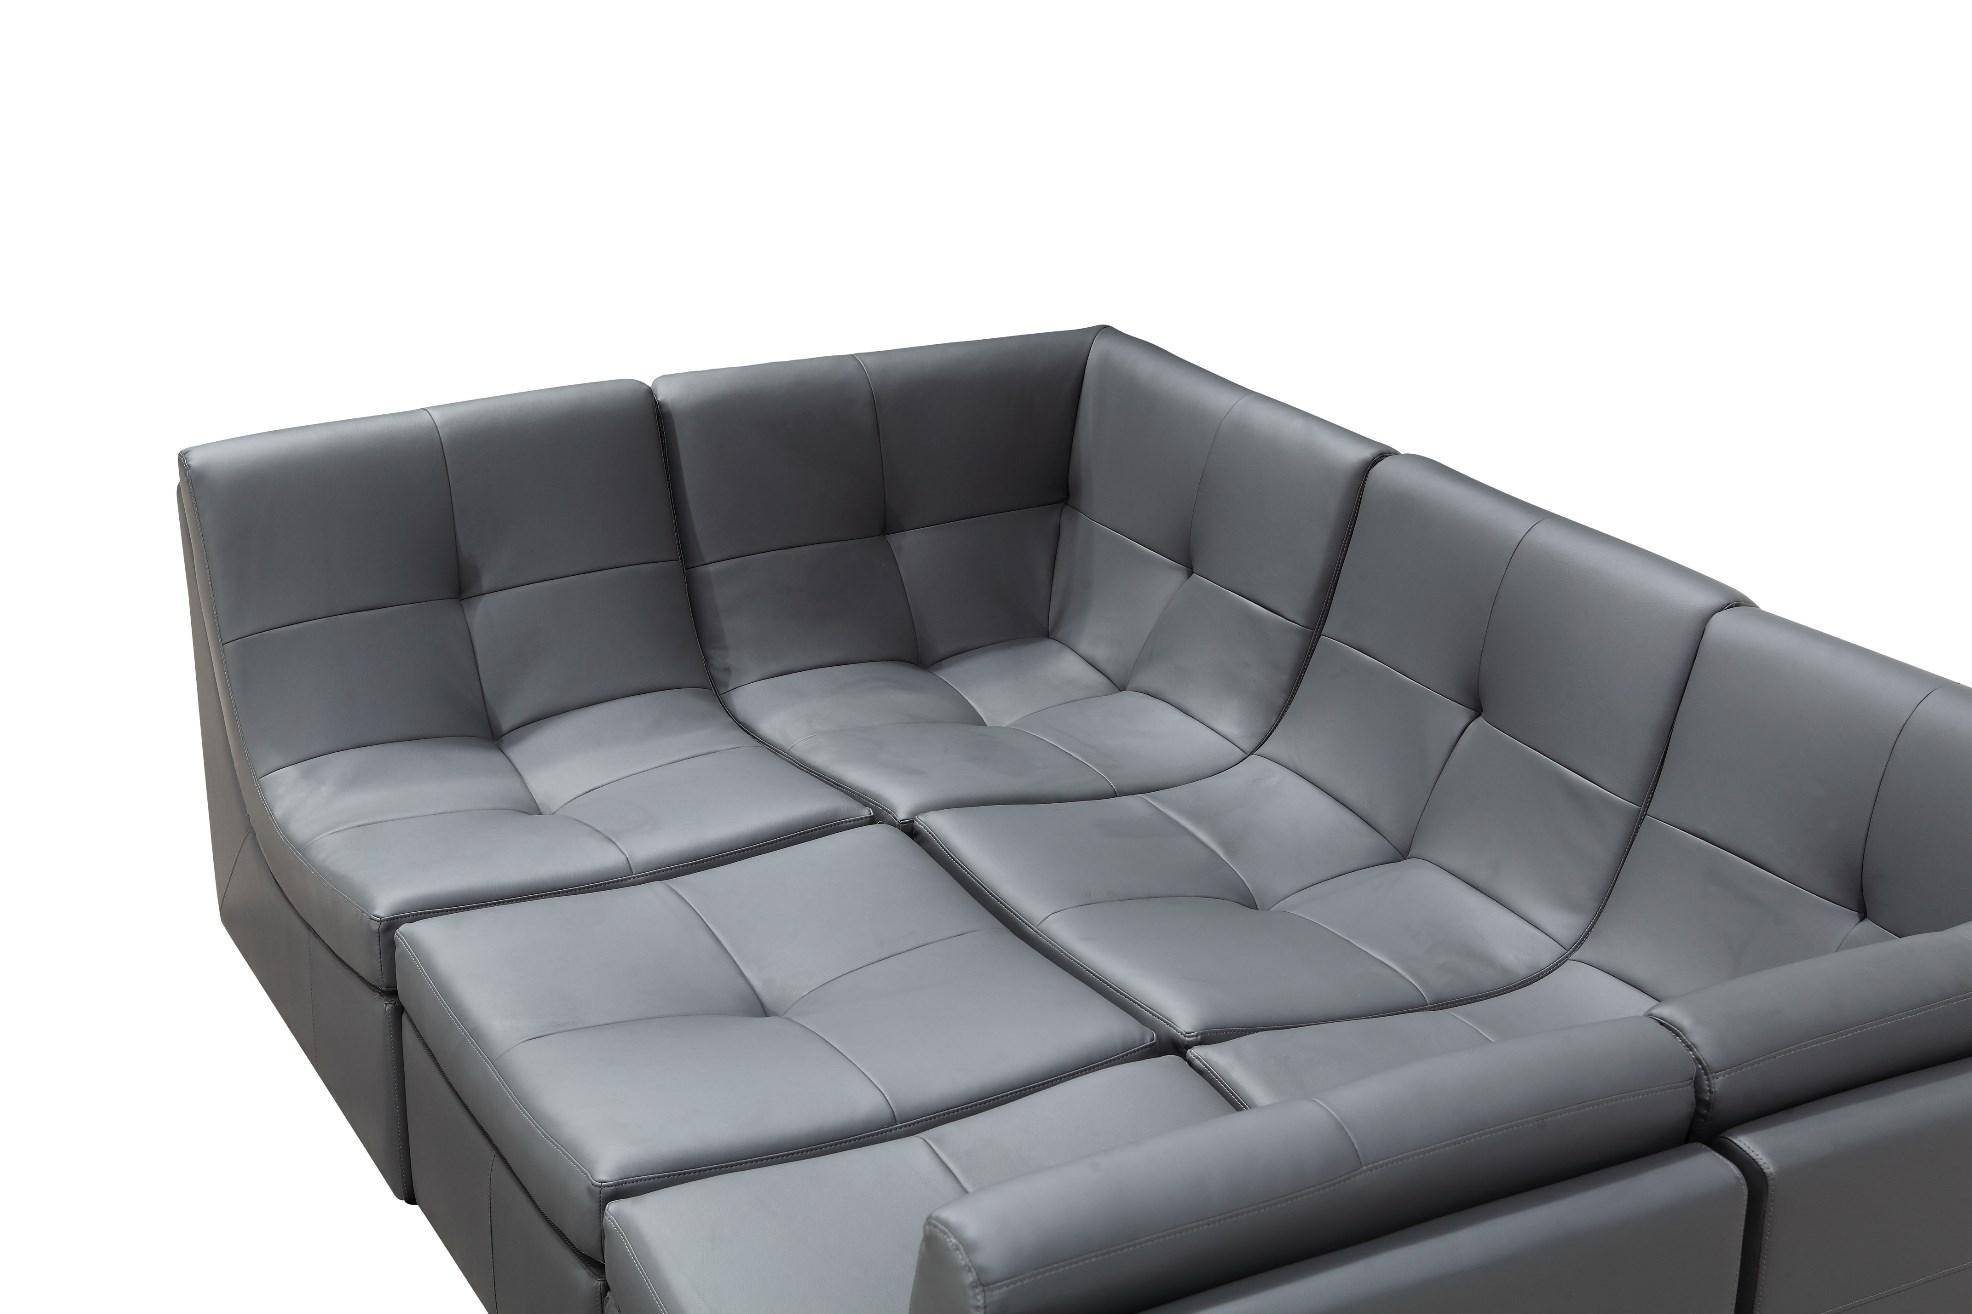 Modern Grey Bonded Leather Sectional Modular Sofa Set 6Pcs ...